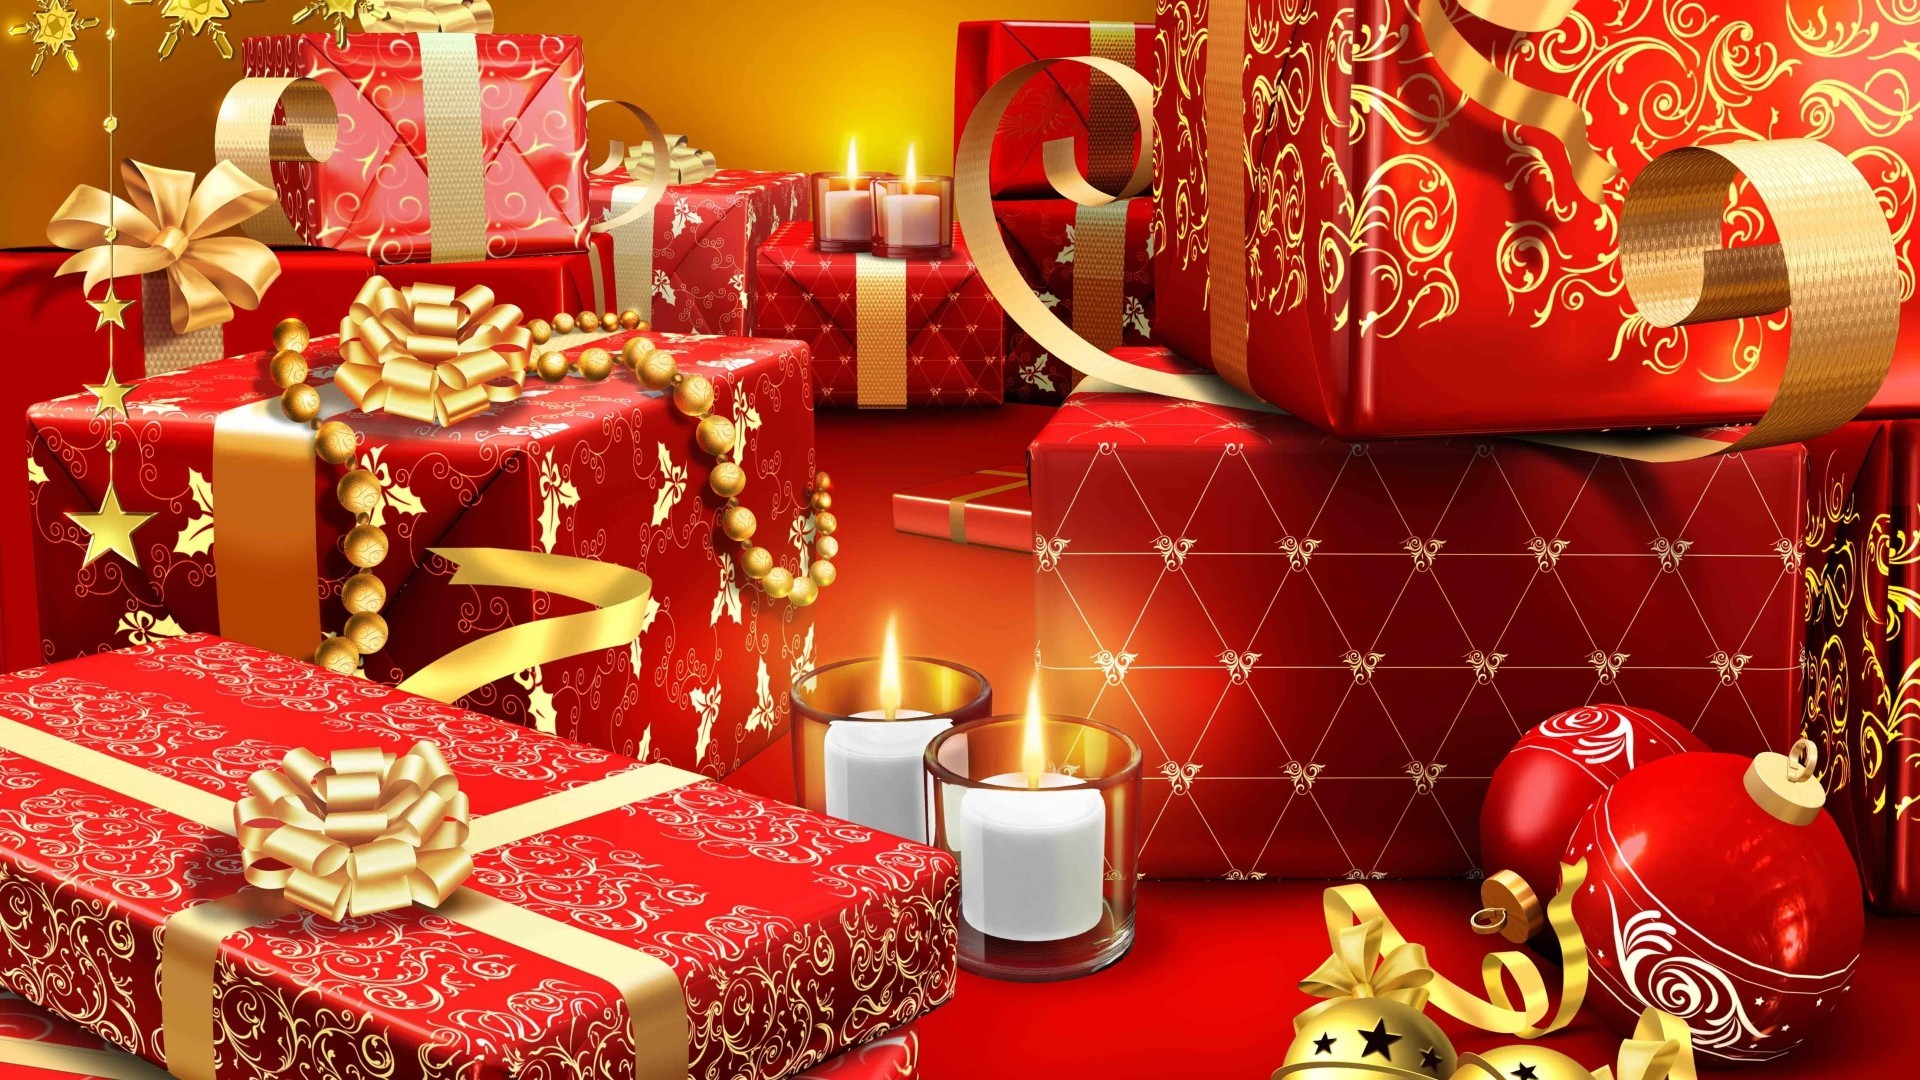 new year christmas decoration celebration interior design thread winter box gift ornate shining luxury gold surprise indoors bow birthday cozy furniture